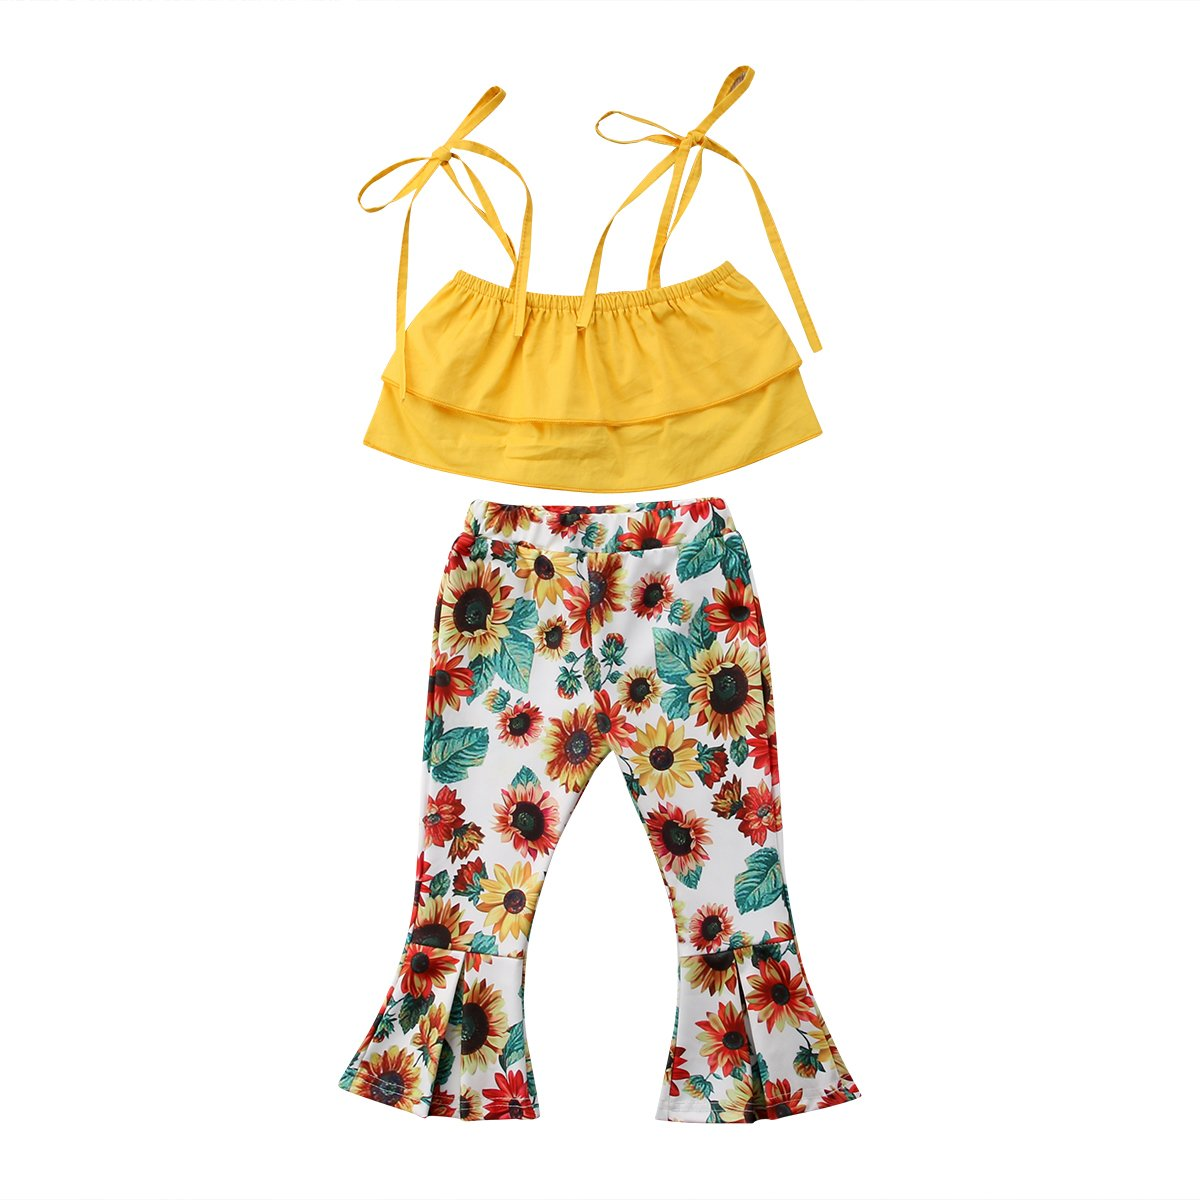 BELS Summer Baby Girls Halter Yellow Floral Romper + Sunflower Houndstooth Bell-Bottom Flared Ruffles Pants(Multi, 4T)